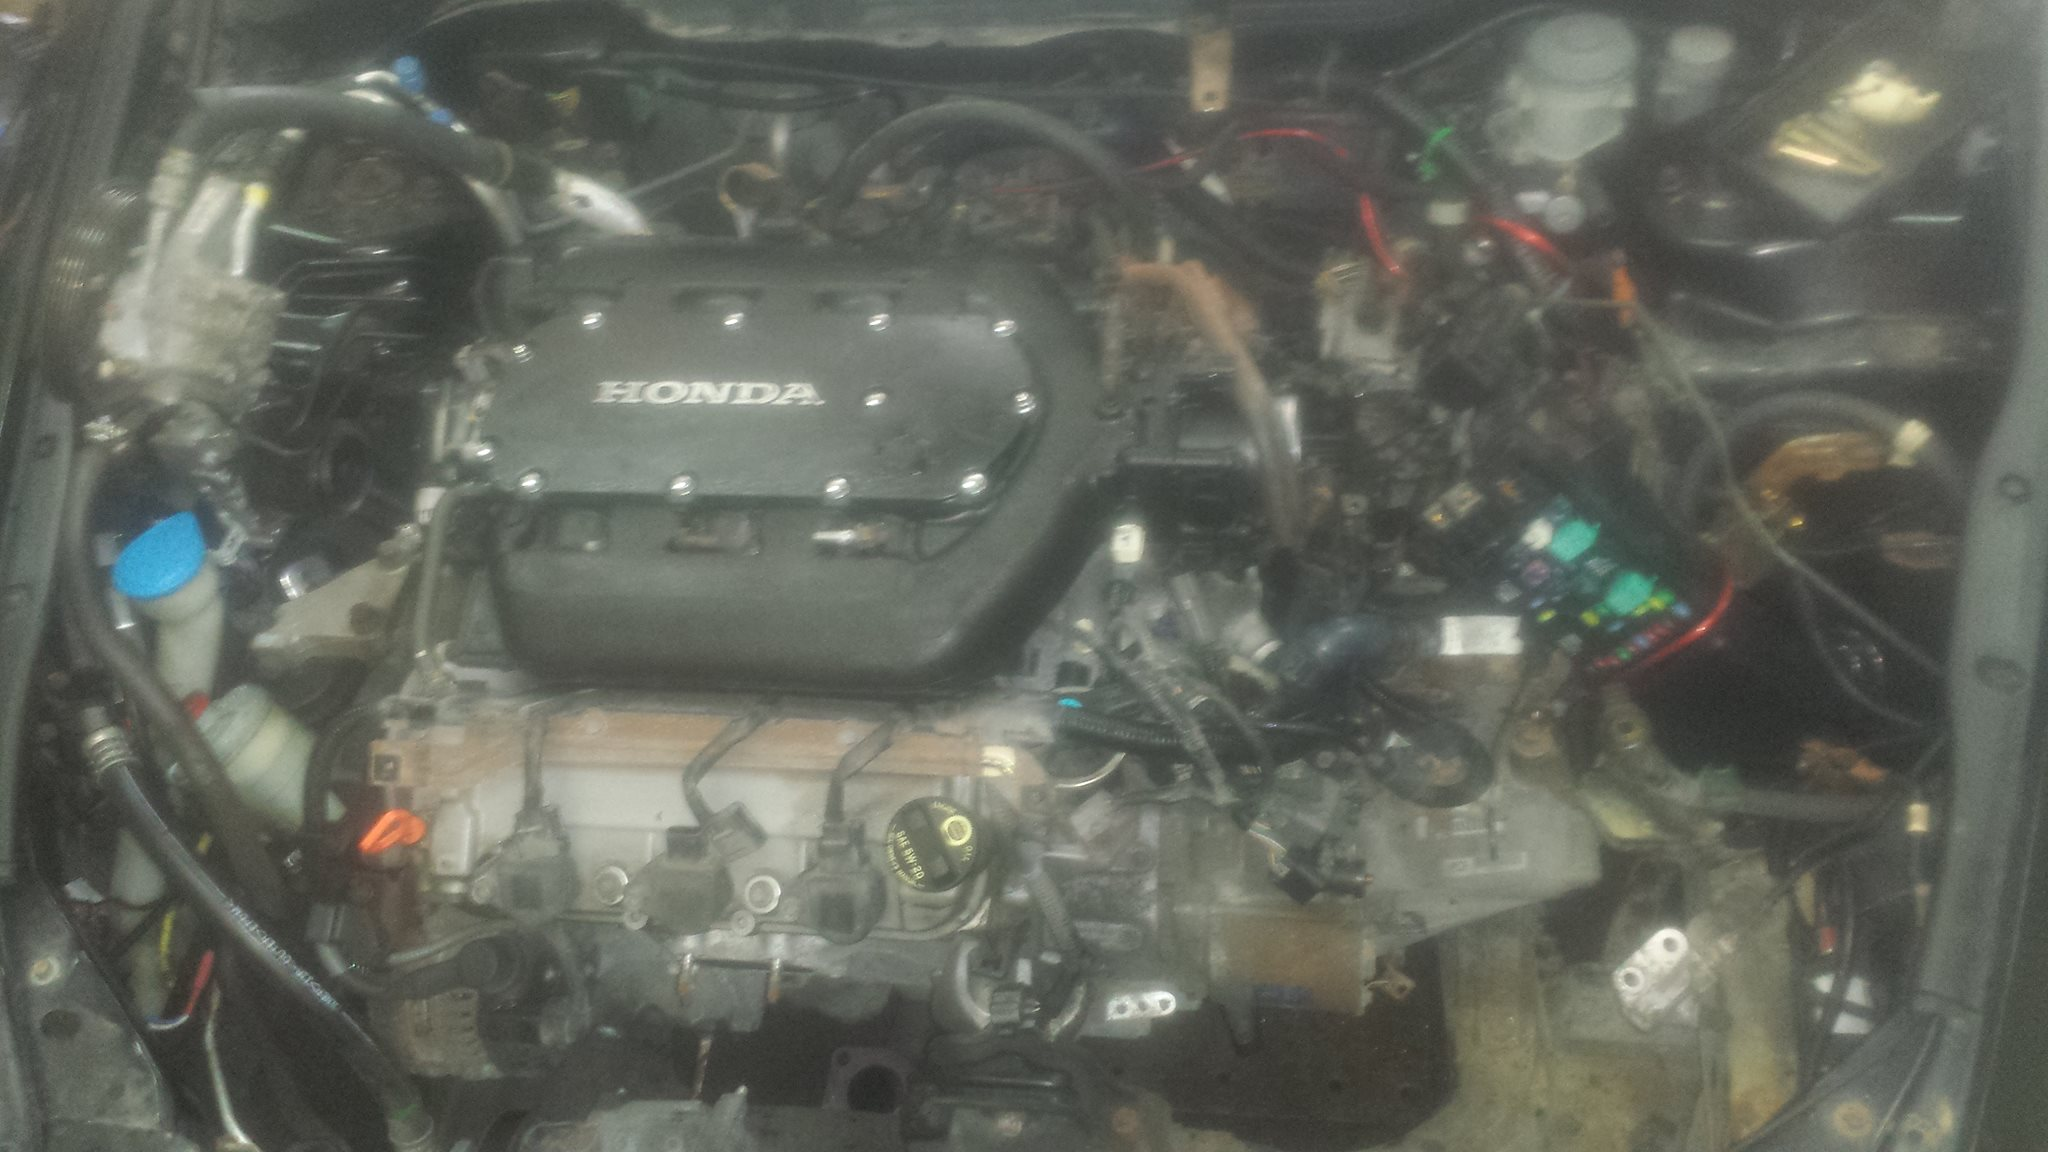 2006-accord-j35a8-2008-acura-tl-type-s-3